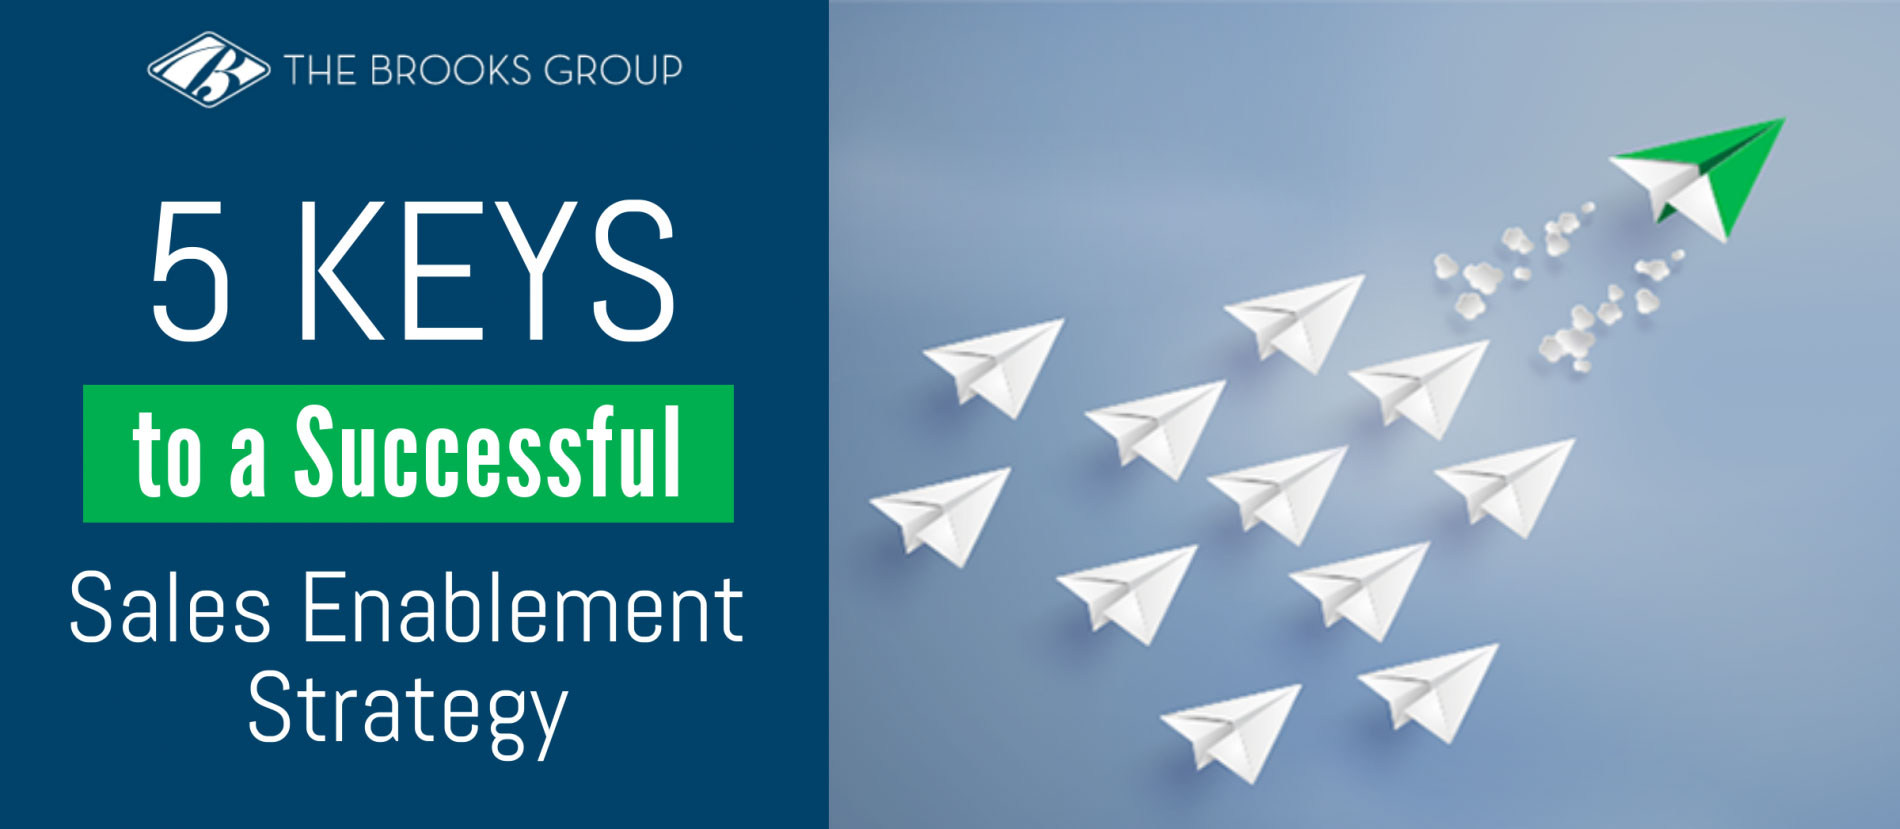 5 Keys to a Successful Sales Enablement Strategy